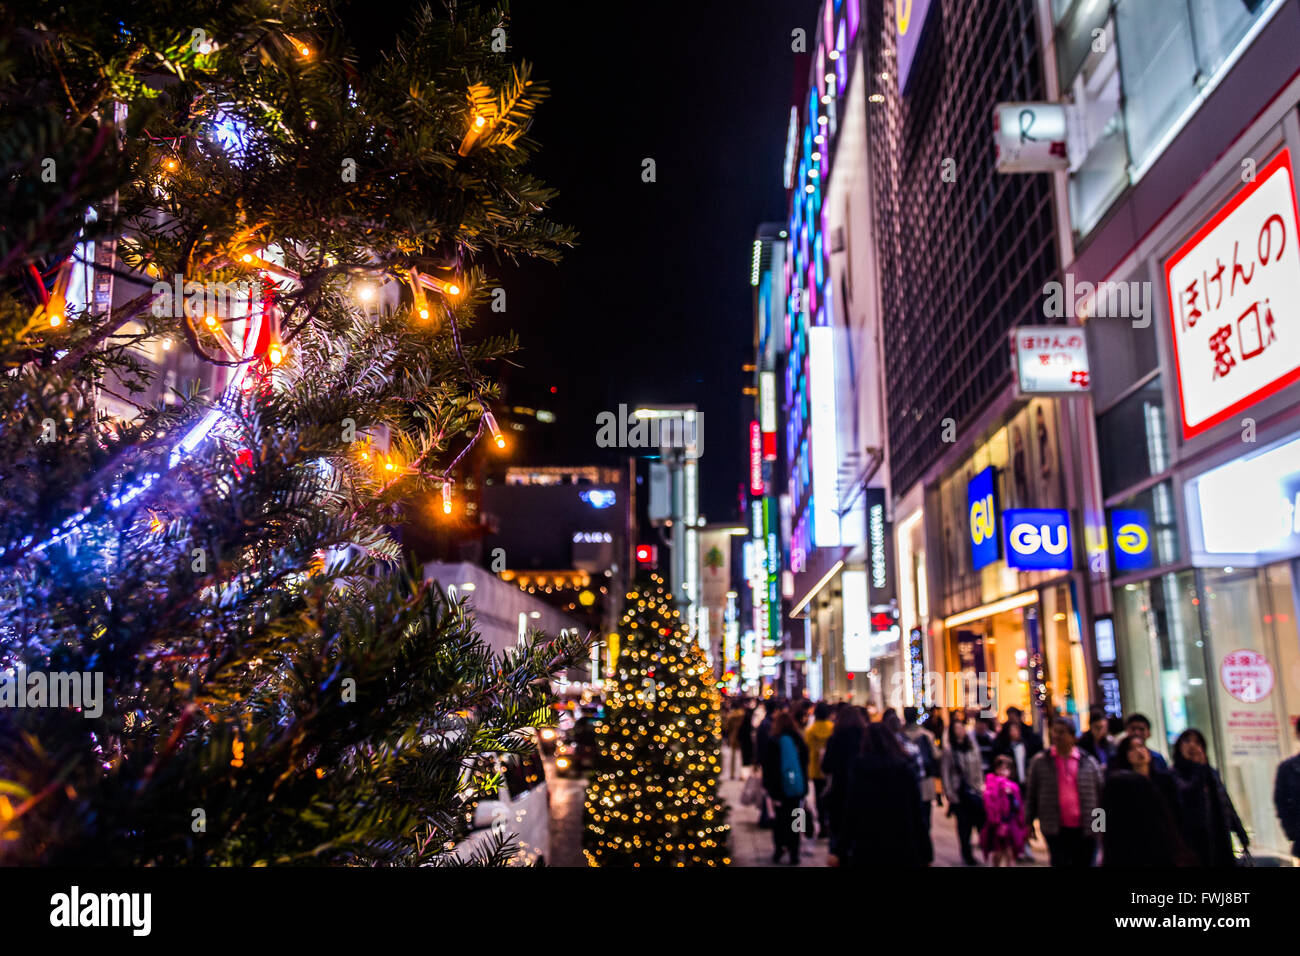 People On Road Along Built Structures, And Illuminated Trees - Stock Image